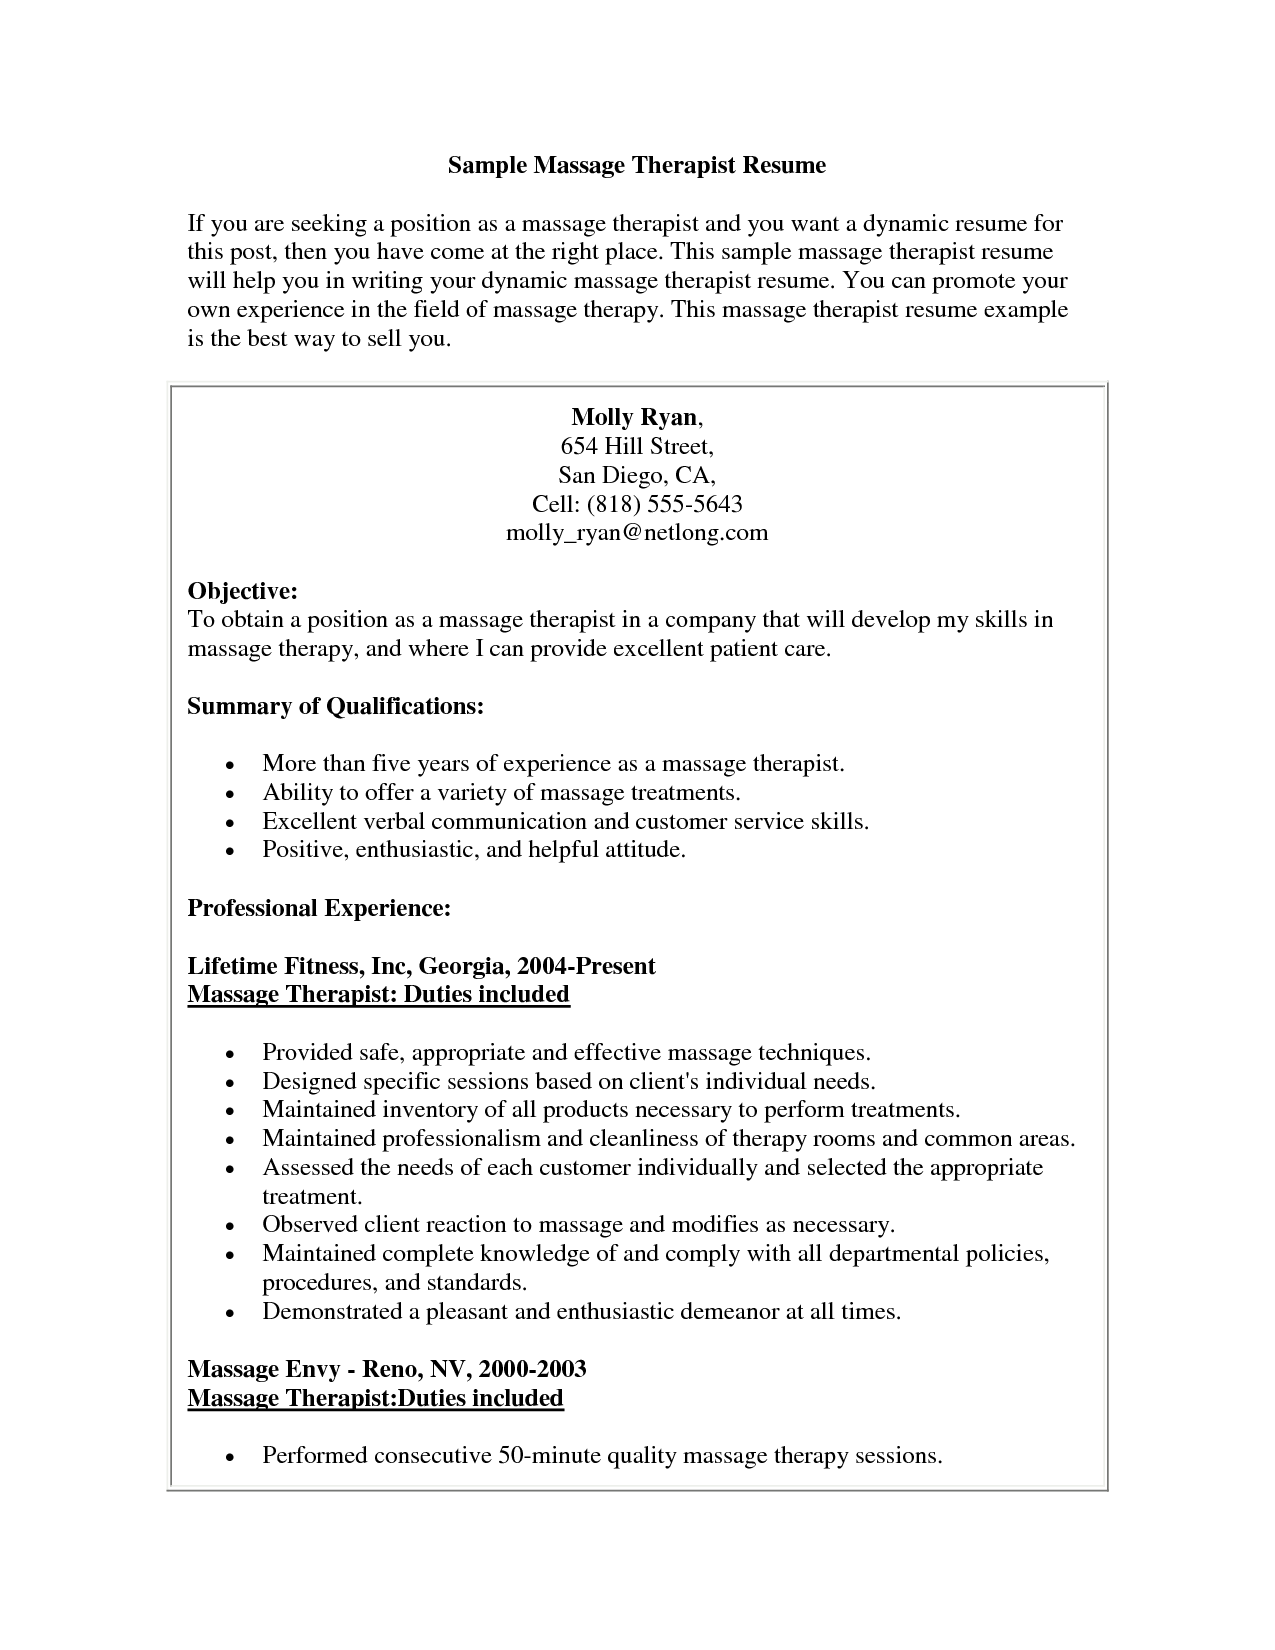 Exceptional Massage Therapist Resume Sample Massage Therapist Resume Sample, Massage  Therapist Resume Objective, Massage Therapist Pertaining To Massage Therapy Resumes